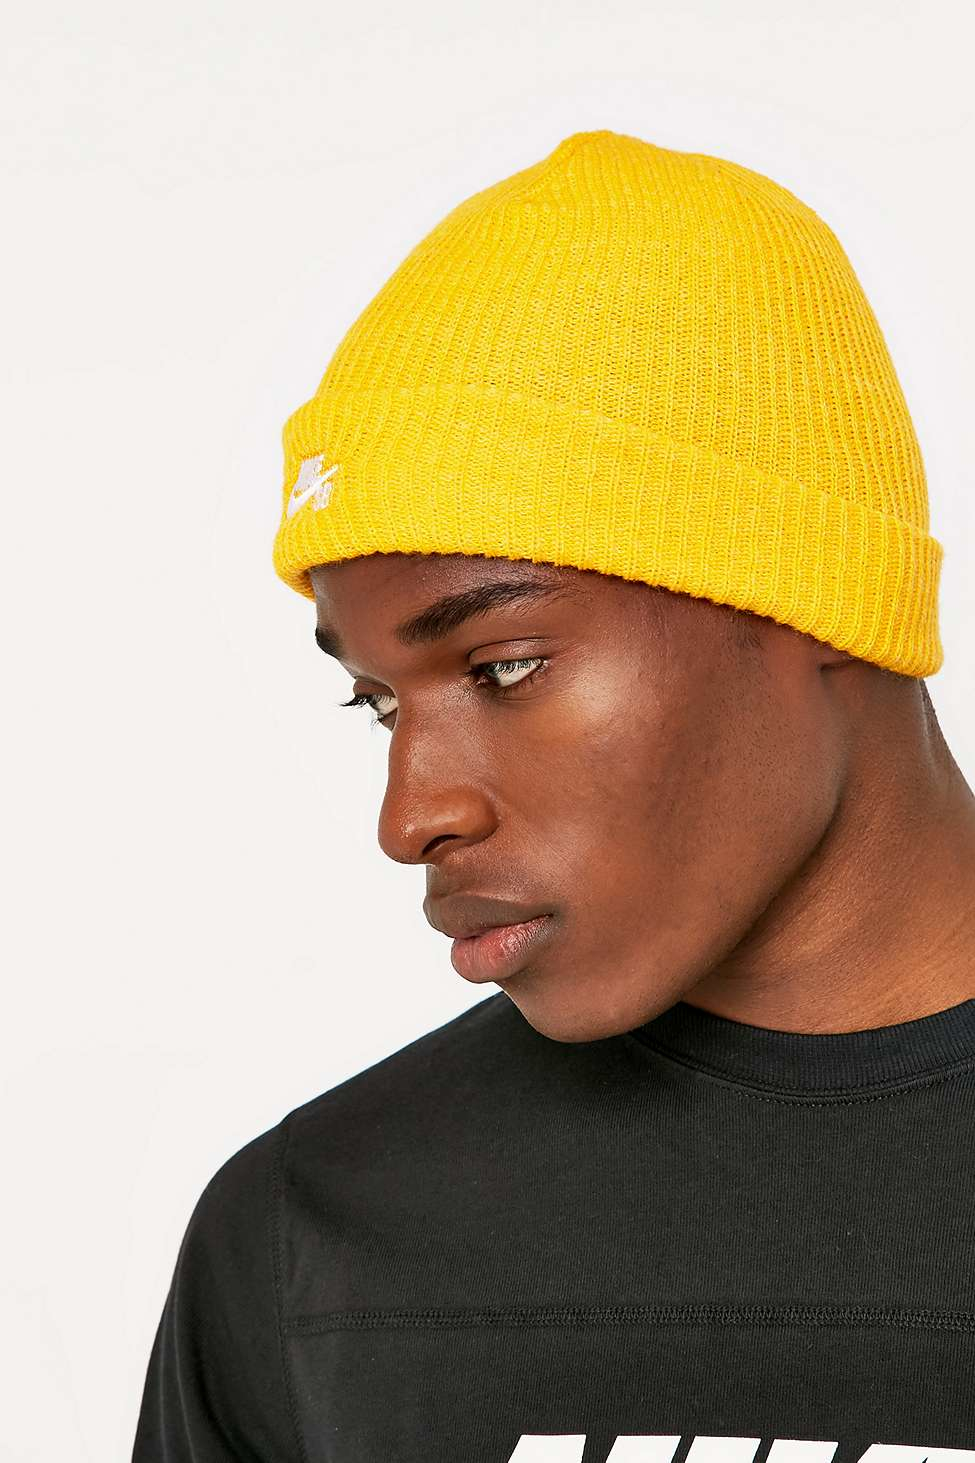 spain new nike sb fisherman cap 2063c dd4da  coupon for lyst nike fisherman yellow  beanie in yellow for men fb869 b065d 5b3a5049070